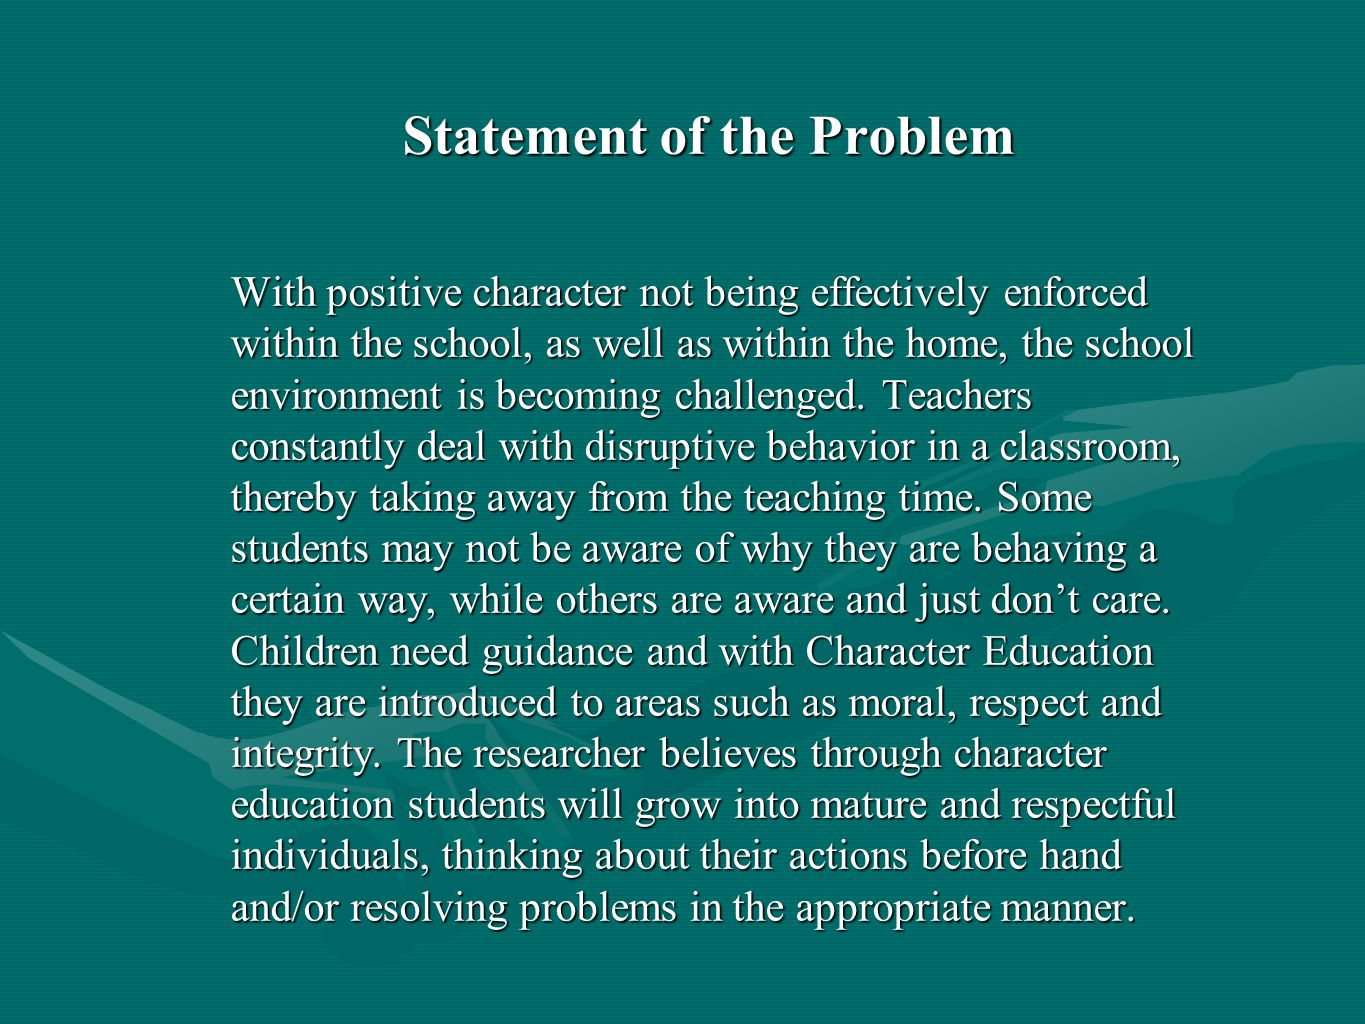 Statement of the Problem With positive character not being effectively enforced within the school, as well as within the home, the school environment is becoming challenged.